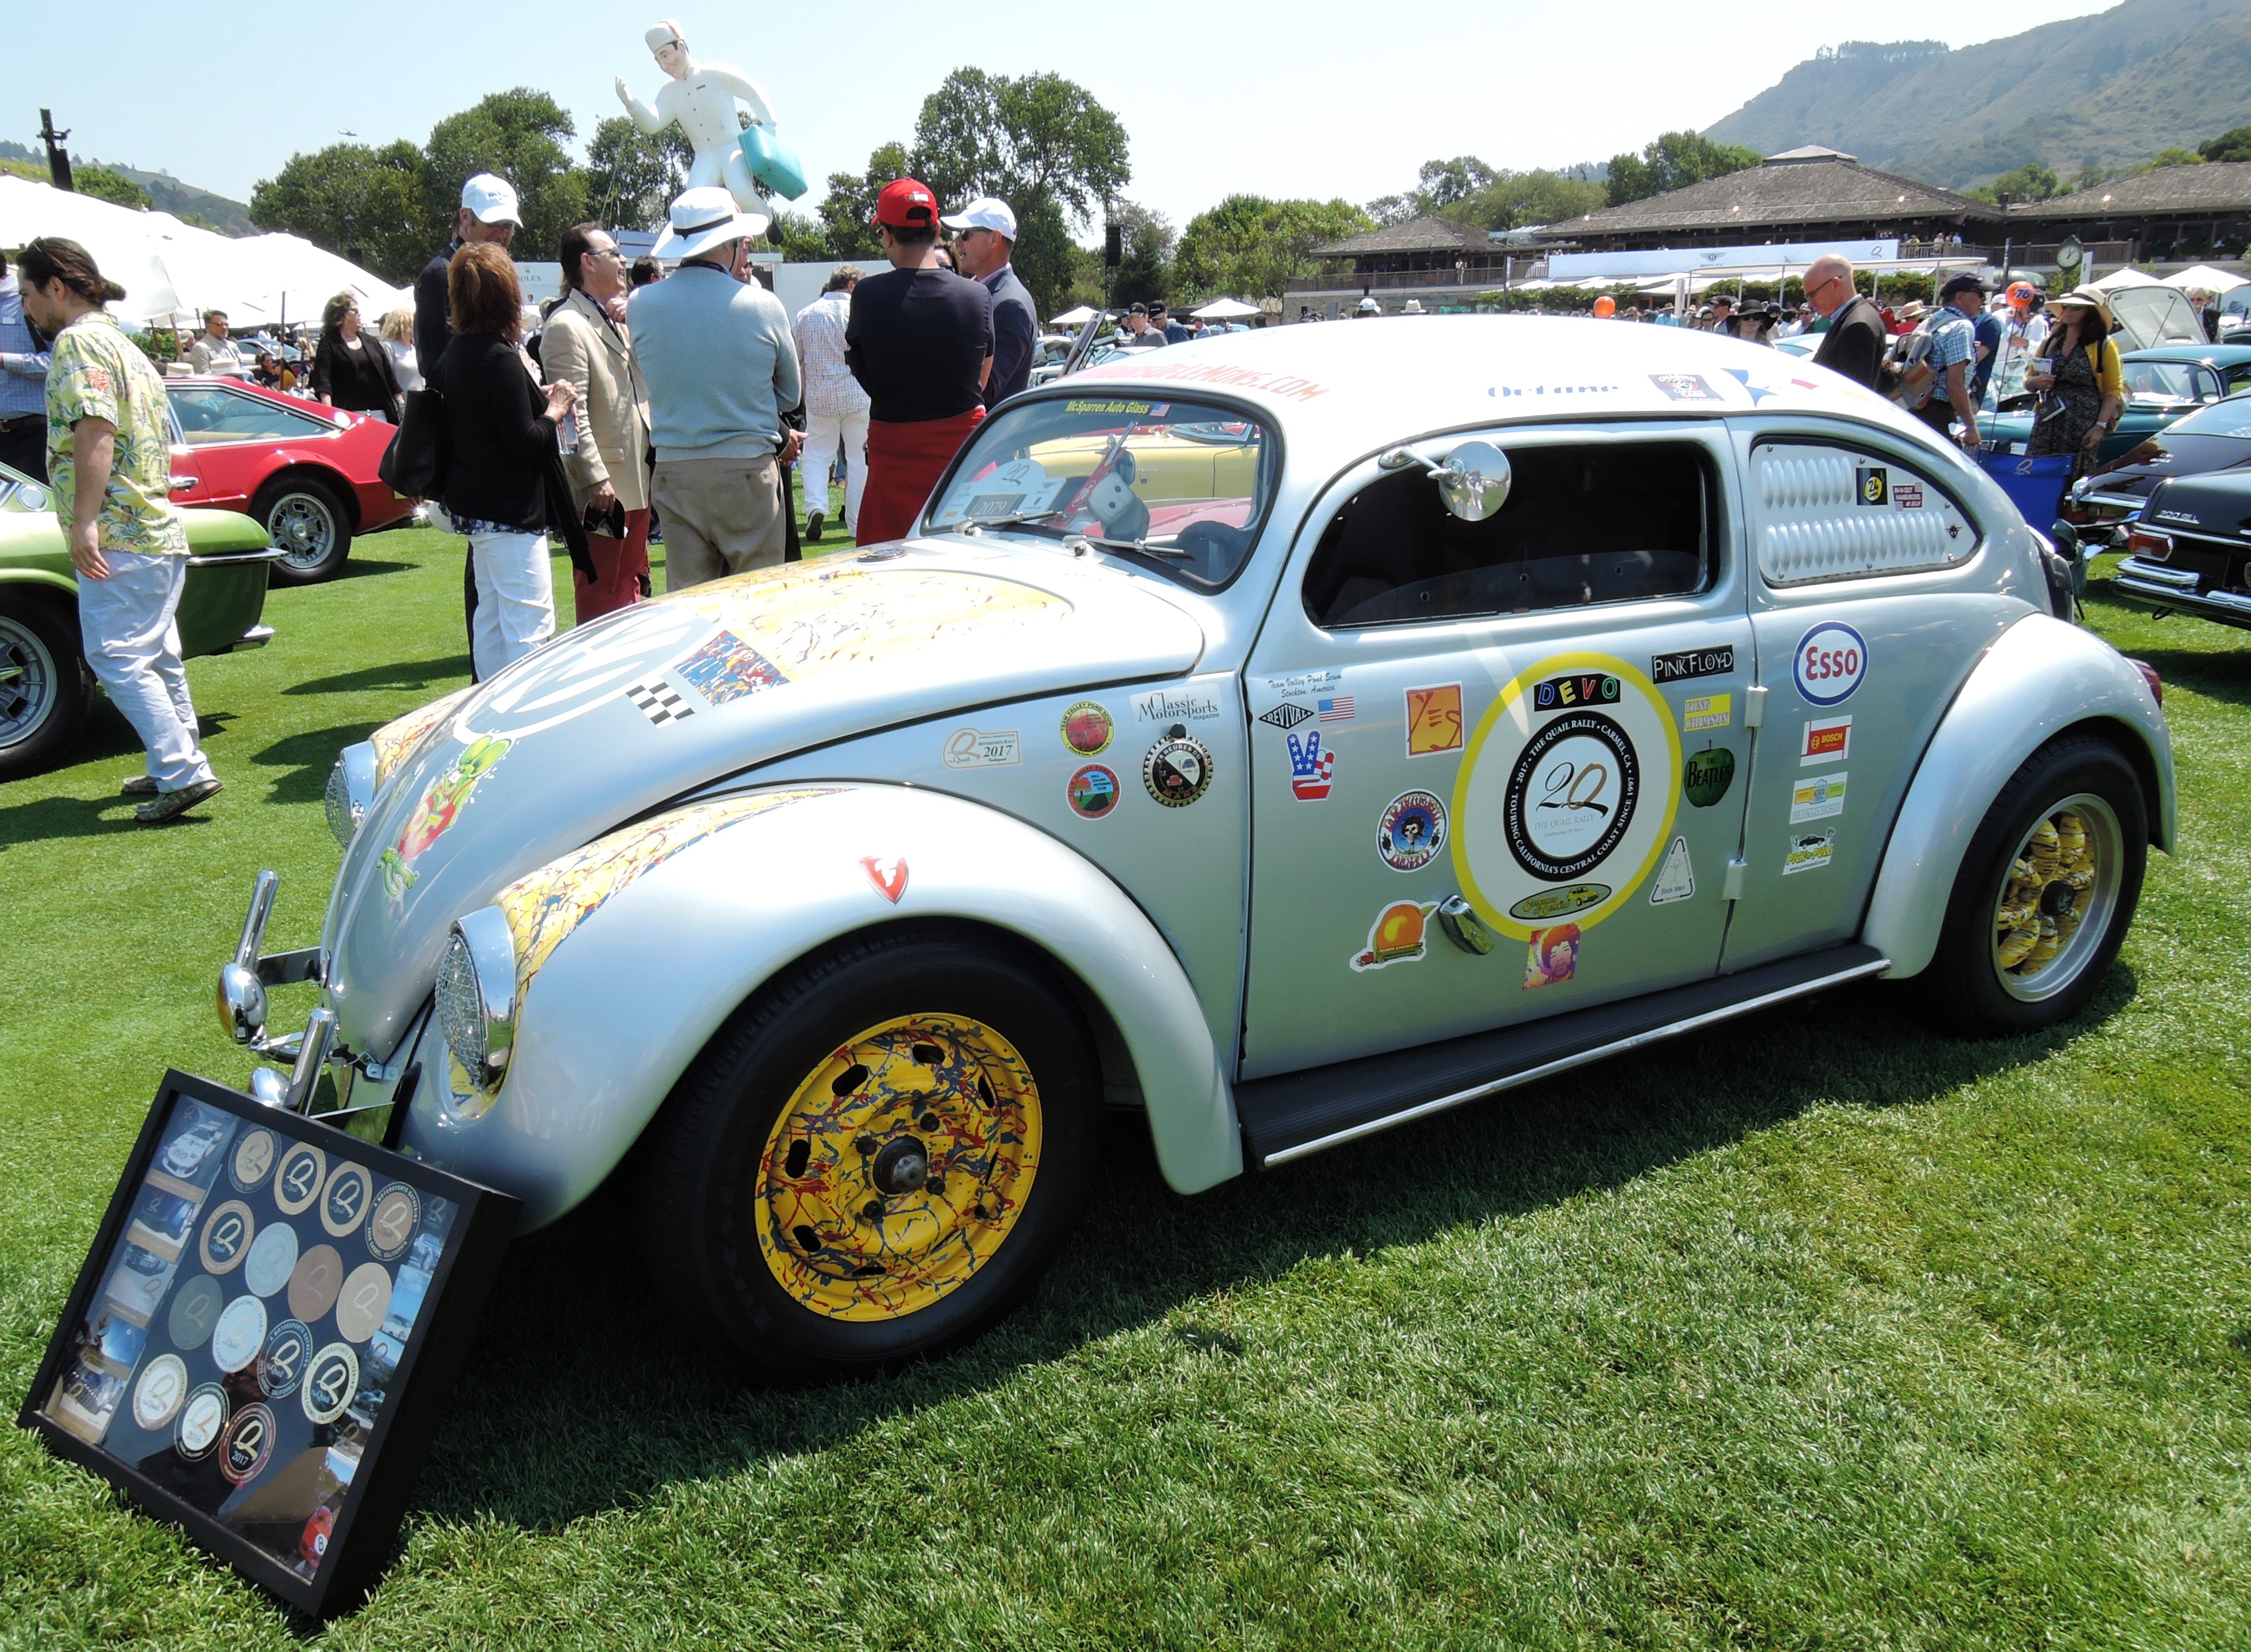 silver 1967 Volkswagen Outlaw Rally Car - The Quail 2017